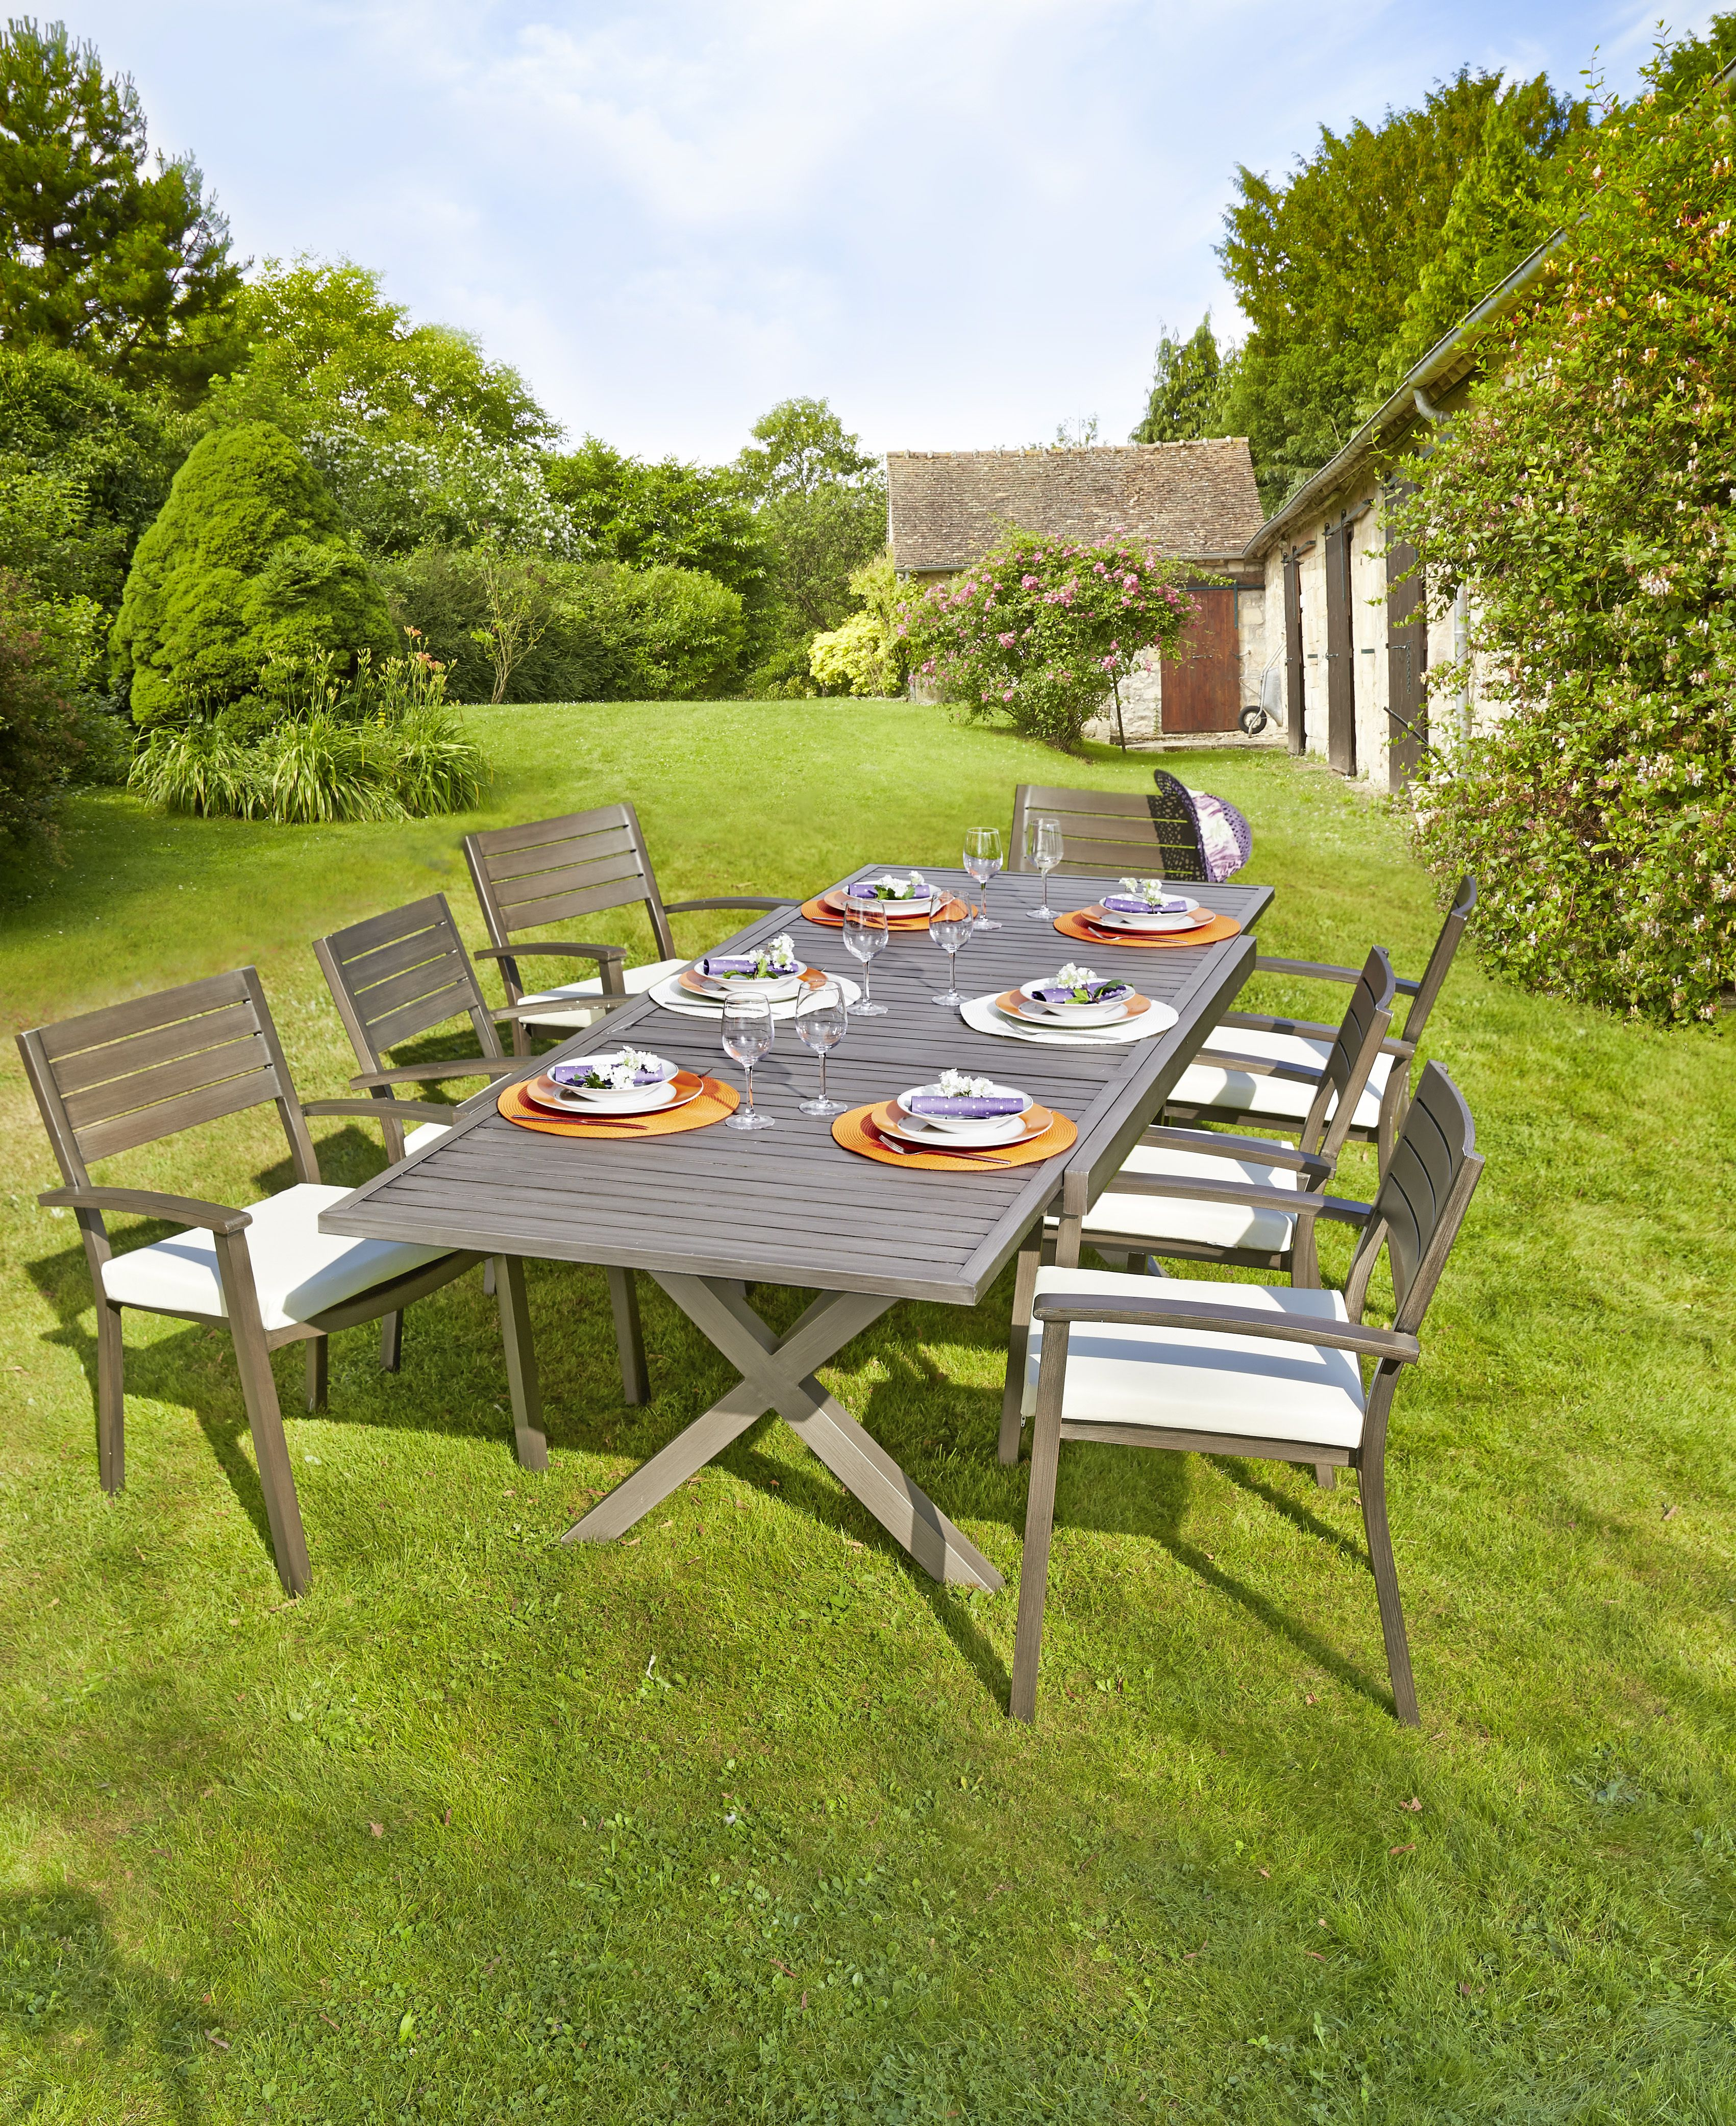 Salon De Jardin Bistrot Aluminium Bien Plus Qu Un Jardin Cuisine Table Kitchen Design Et Kitchen